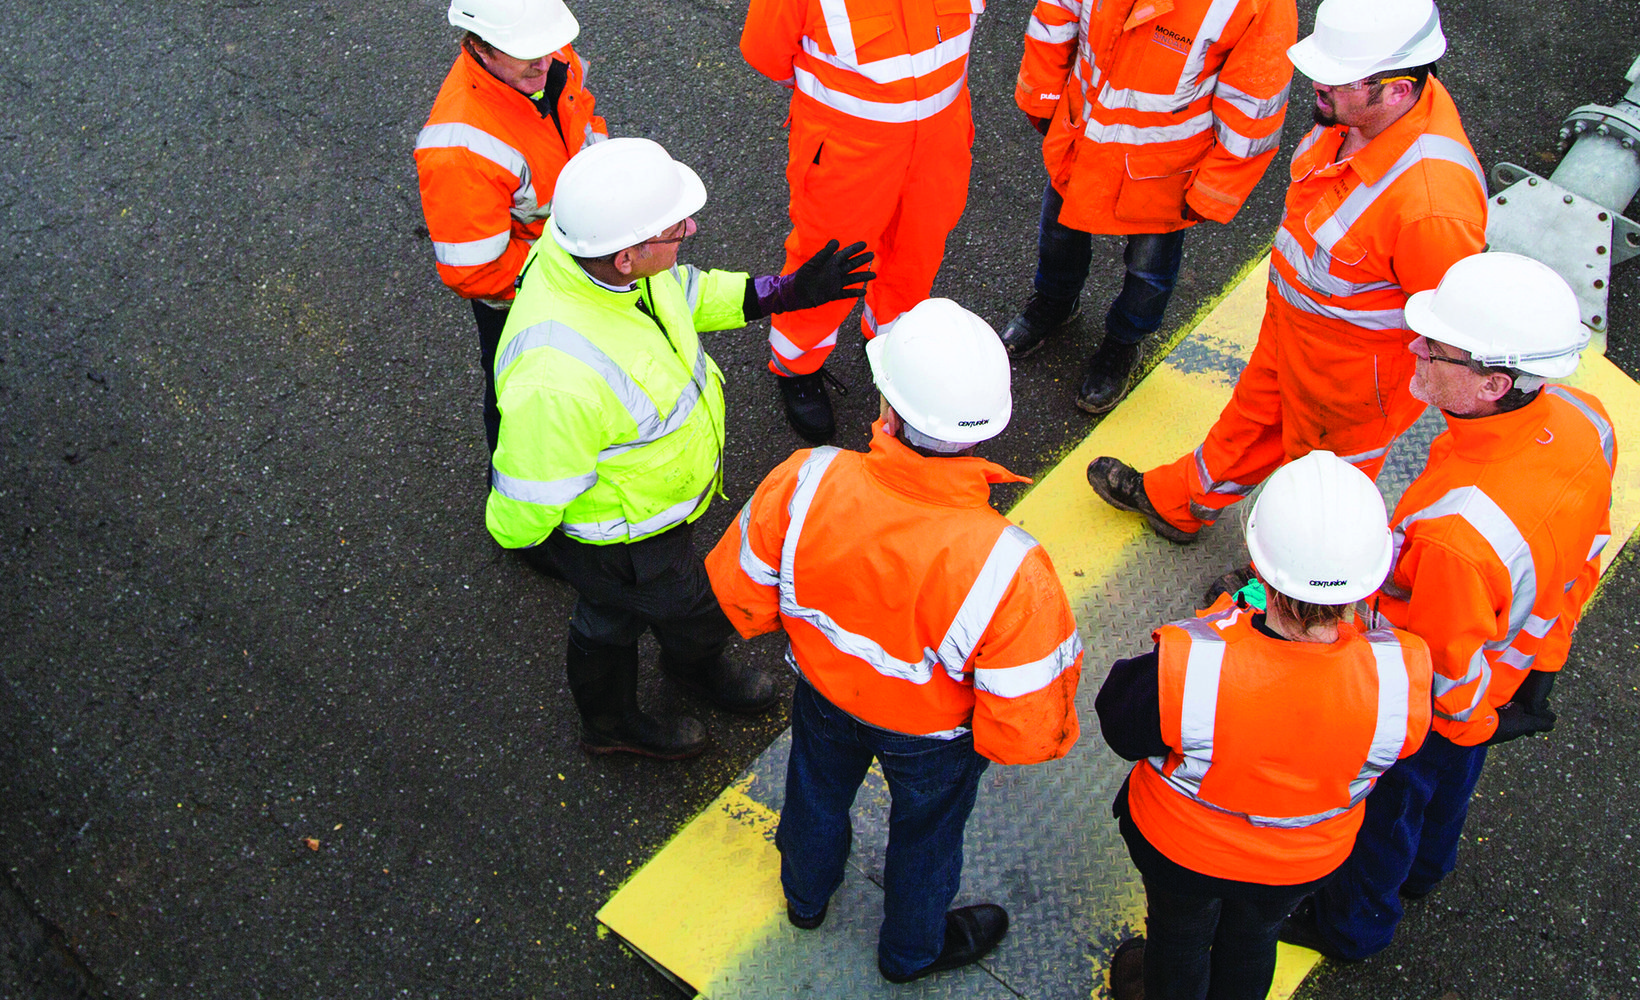 Eight colleagues stand in a circle, wearing Personal Protective Equipment, having a conversation